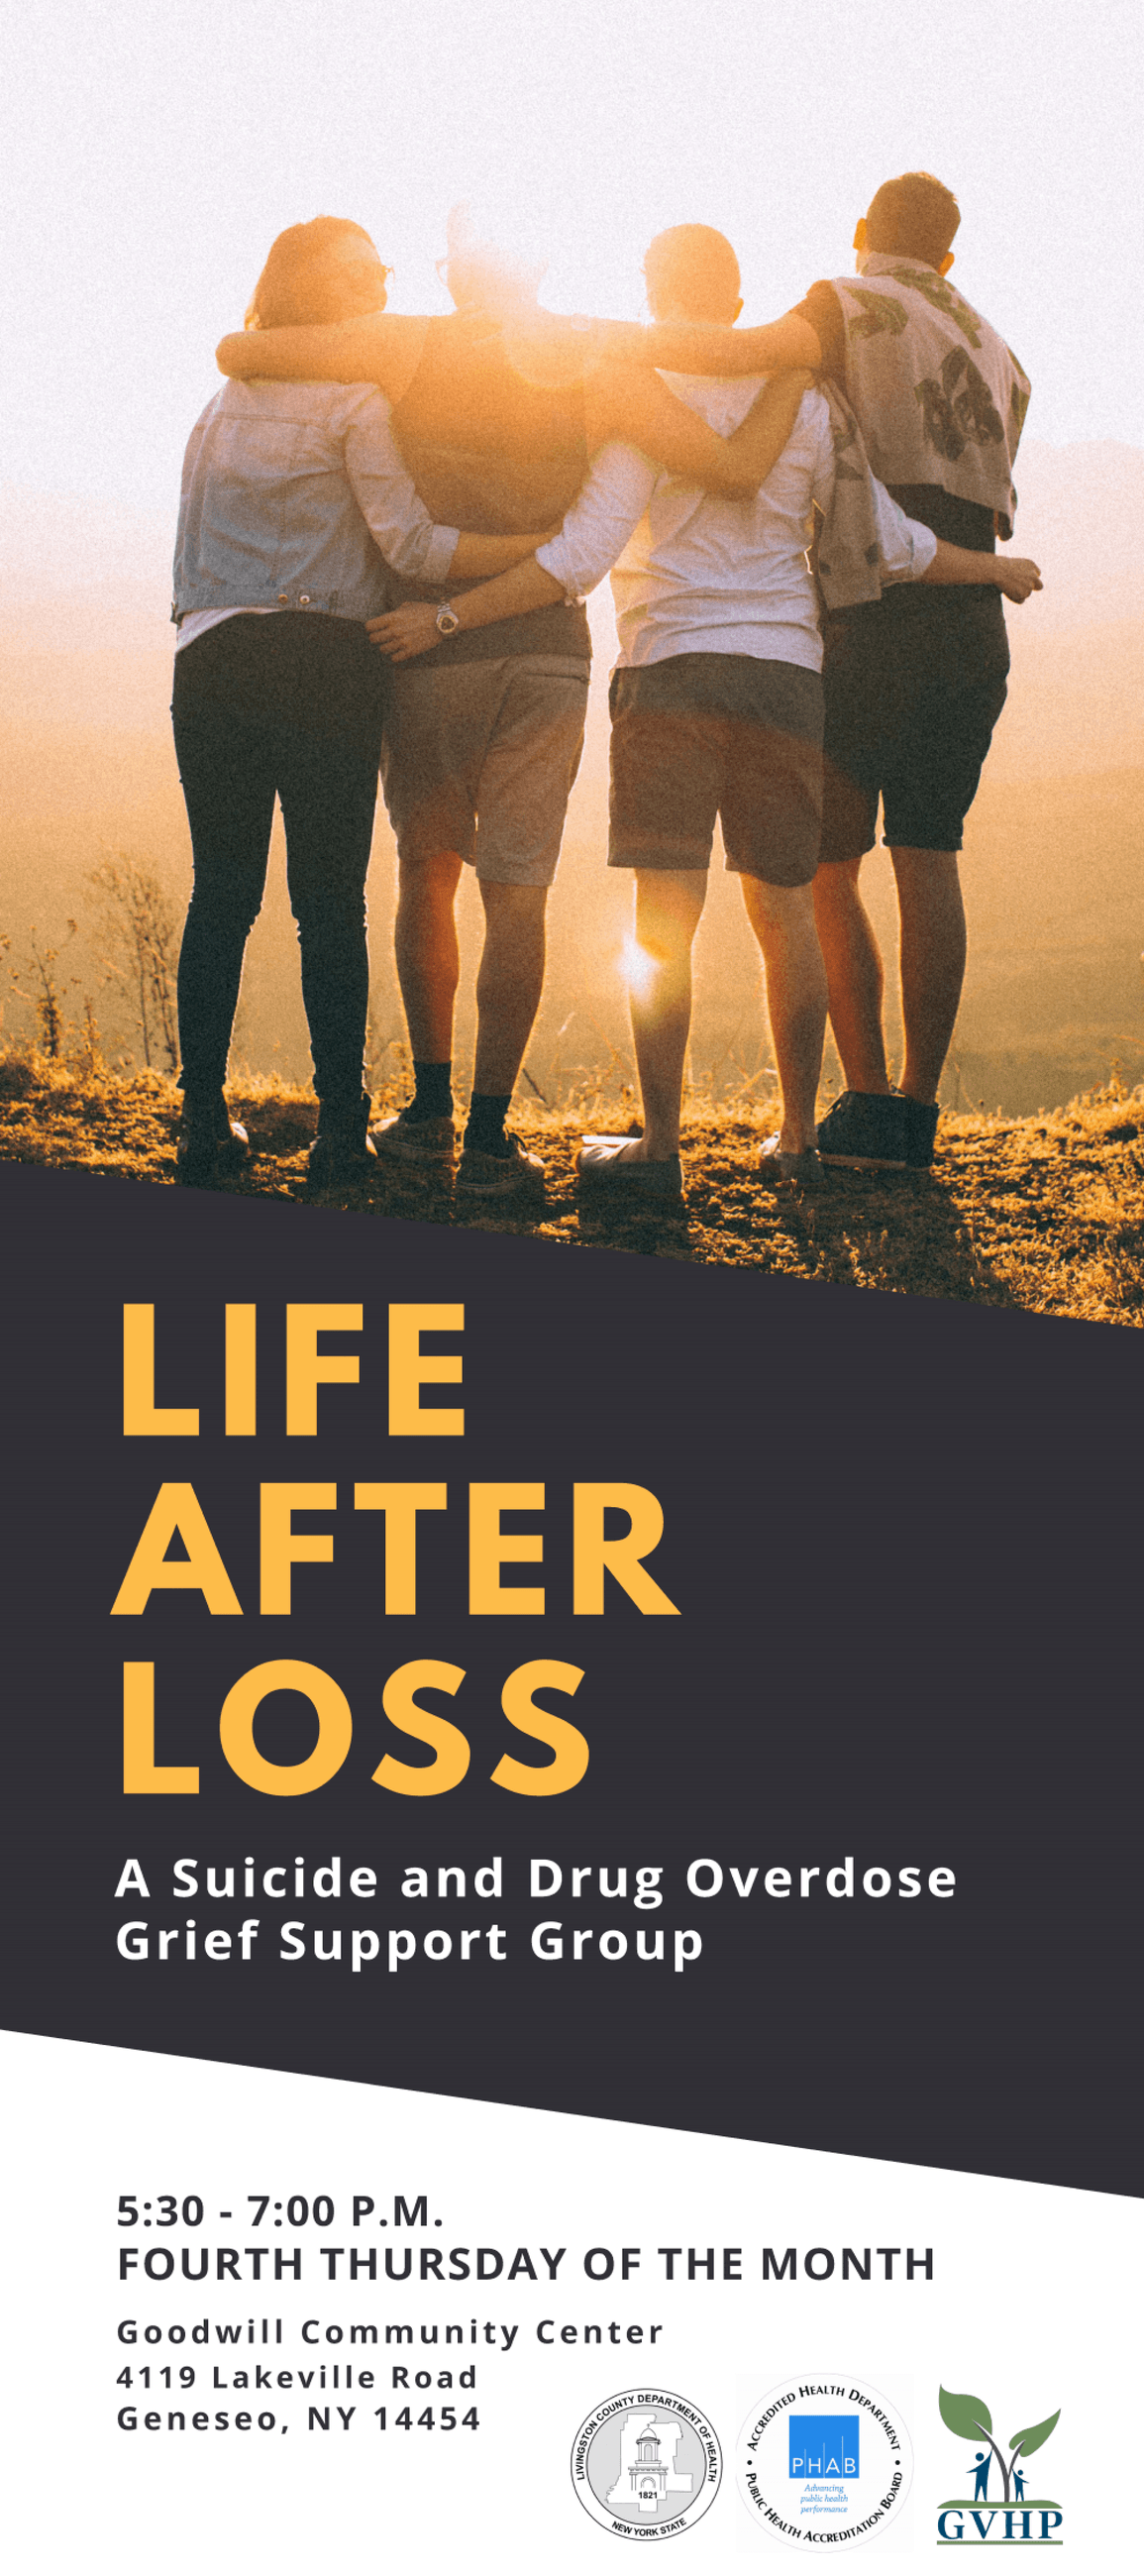 LifeAfterLoss Support Group